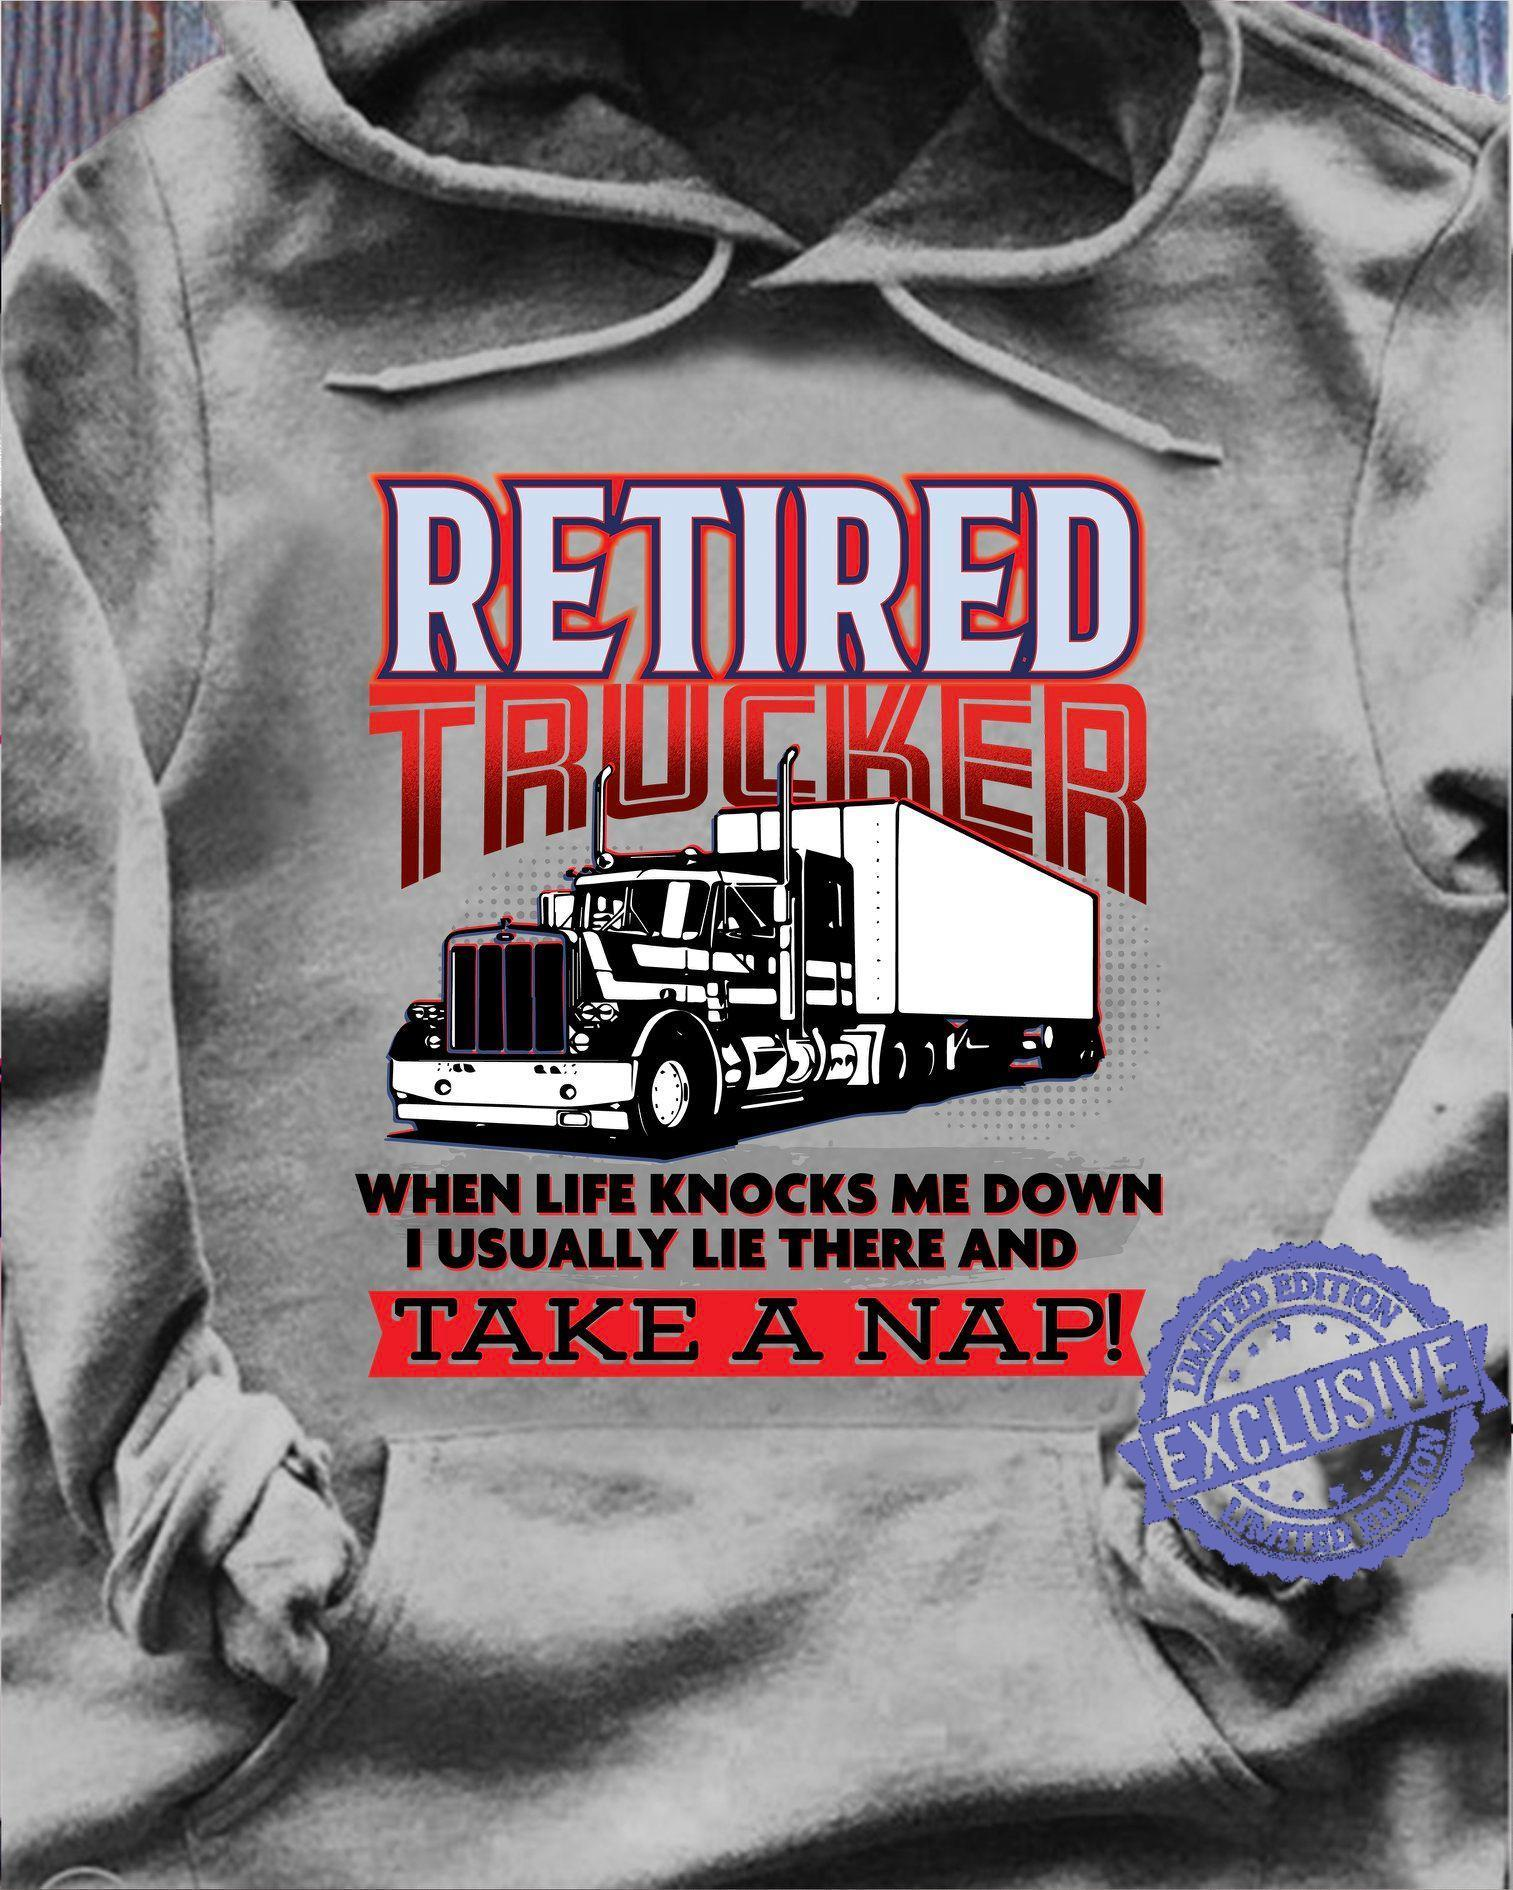 Retired trucker when life knocks me down i usually lie there and taken a nap shirt